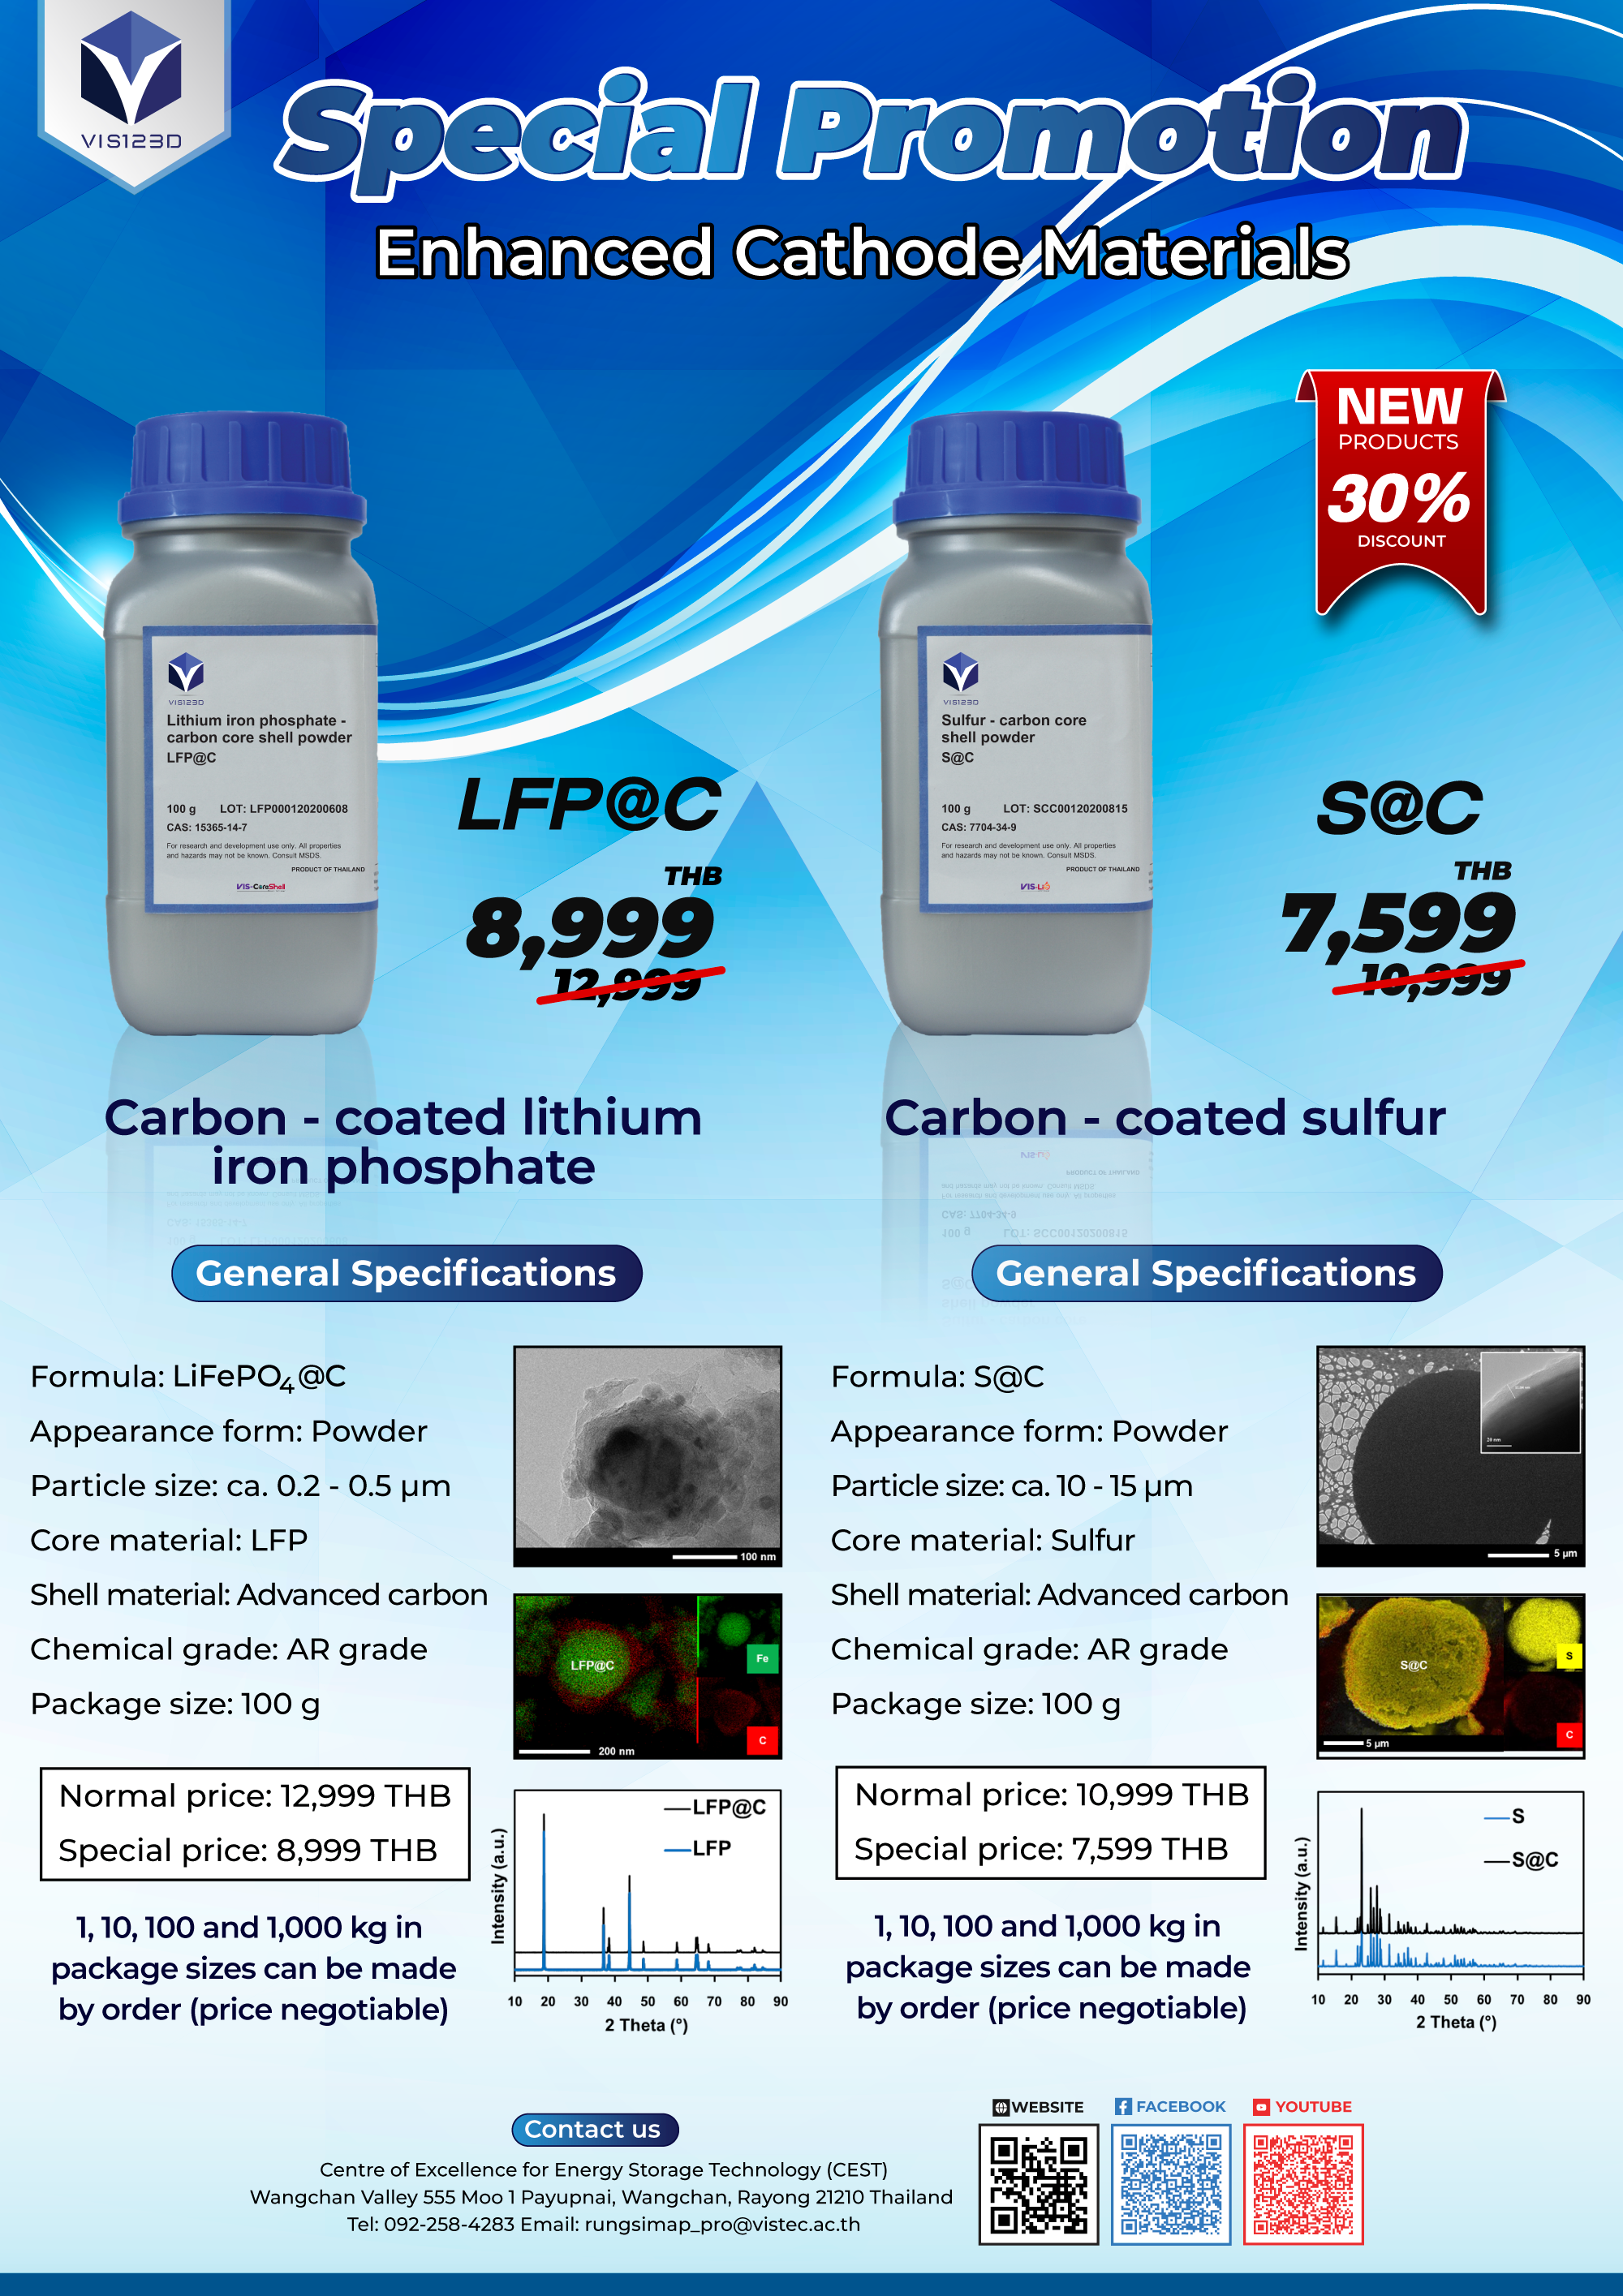 2021 New Product Launch: (III) LFP@C and S@C cathodes